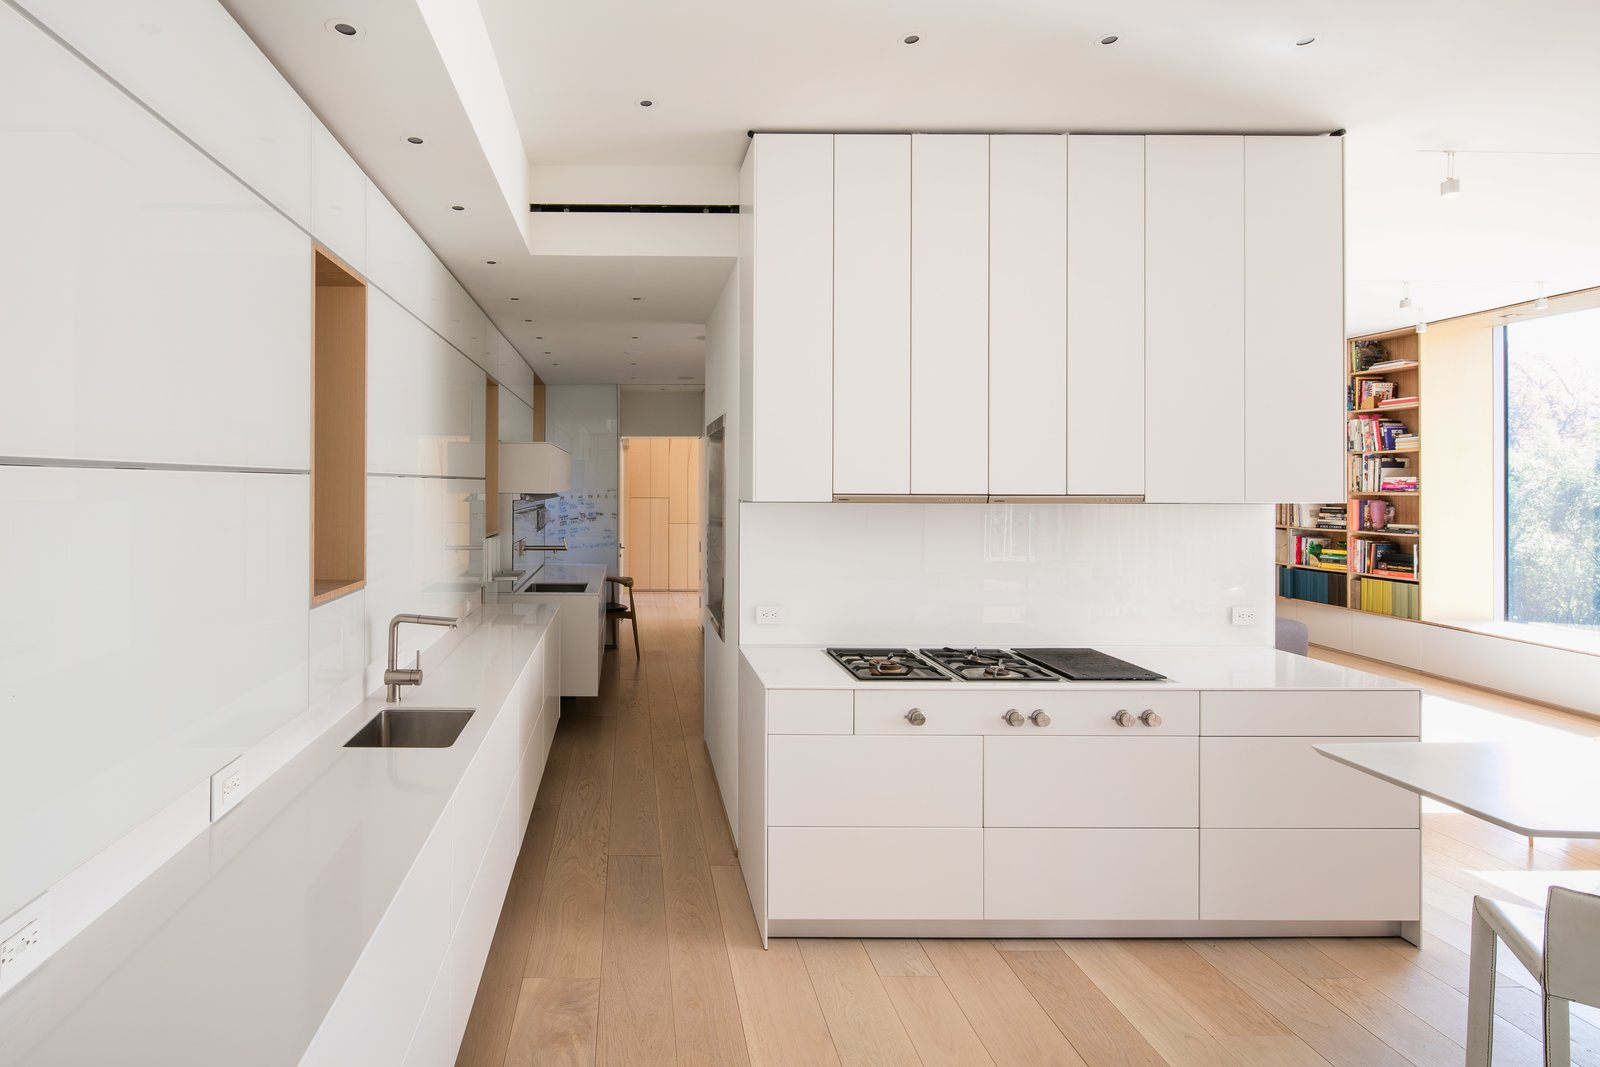 Kitchen Undermount Sink Recessed Lighting White Cabinet Range Light Hardwood Floor